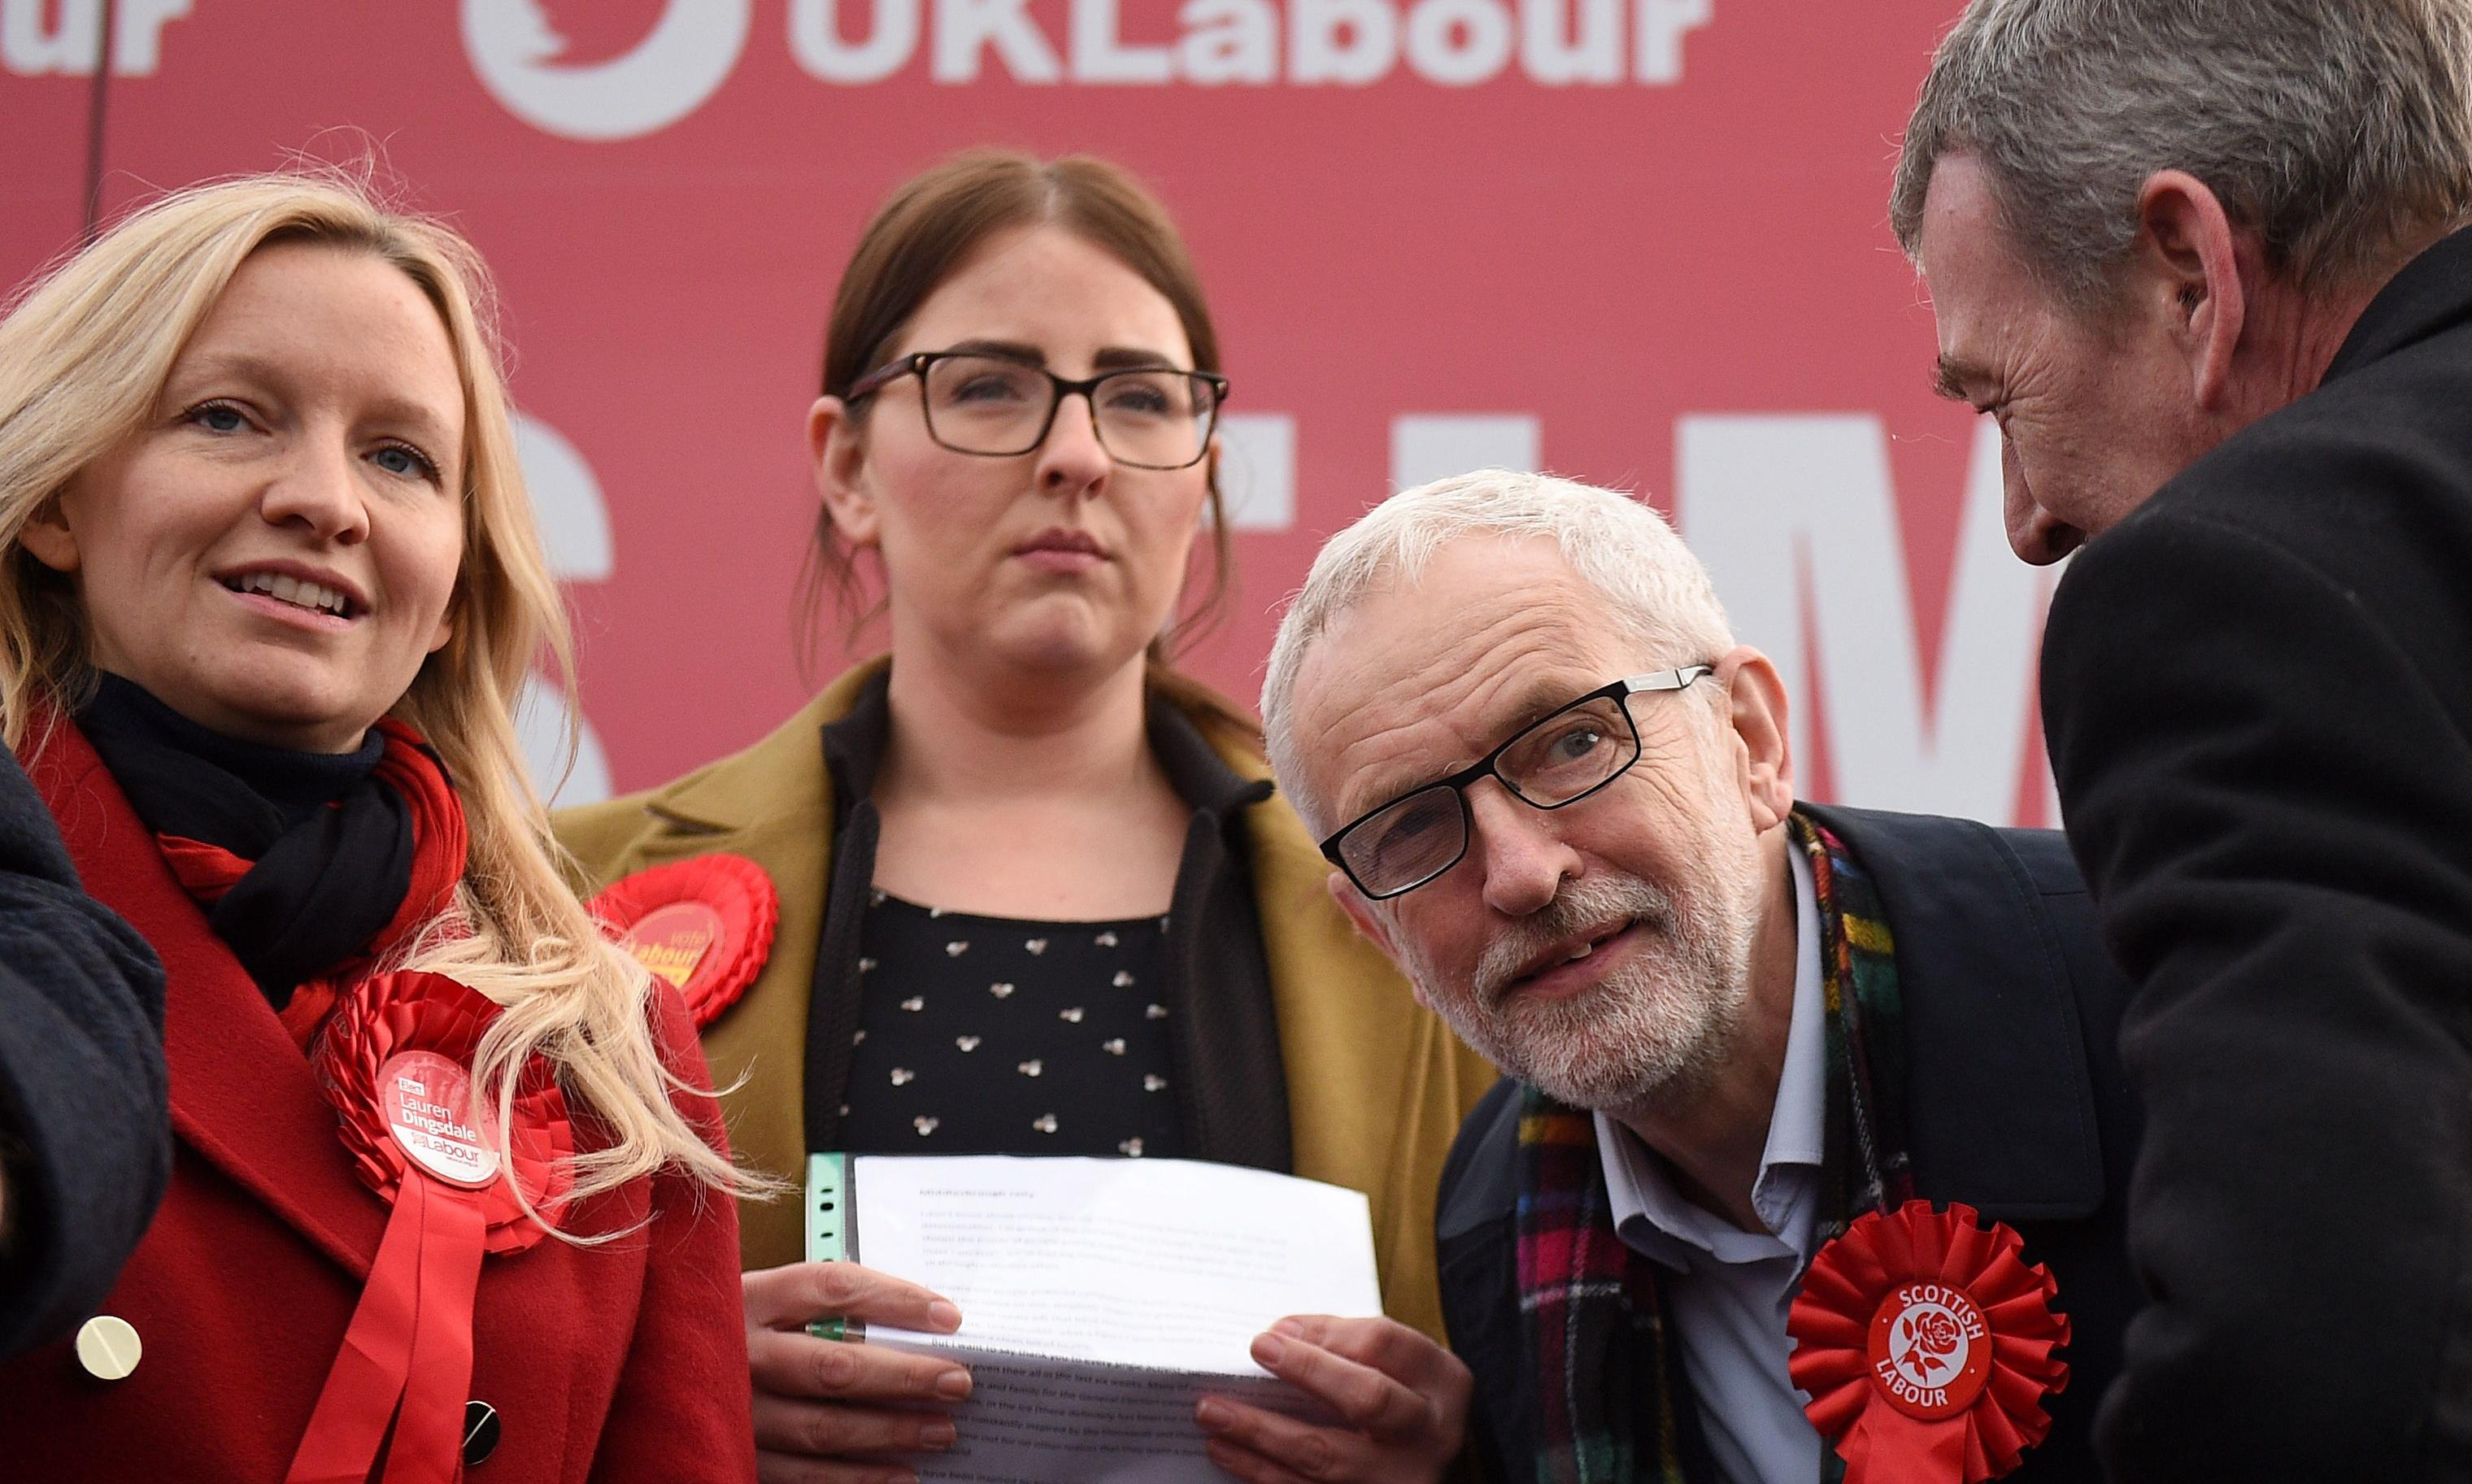 If you want a more equal society, you have to choose Labour